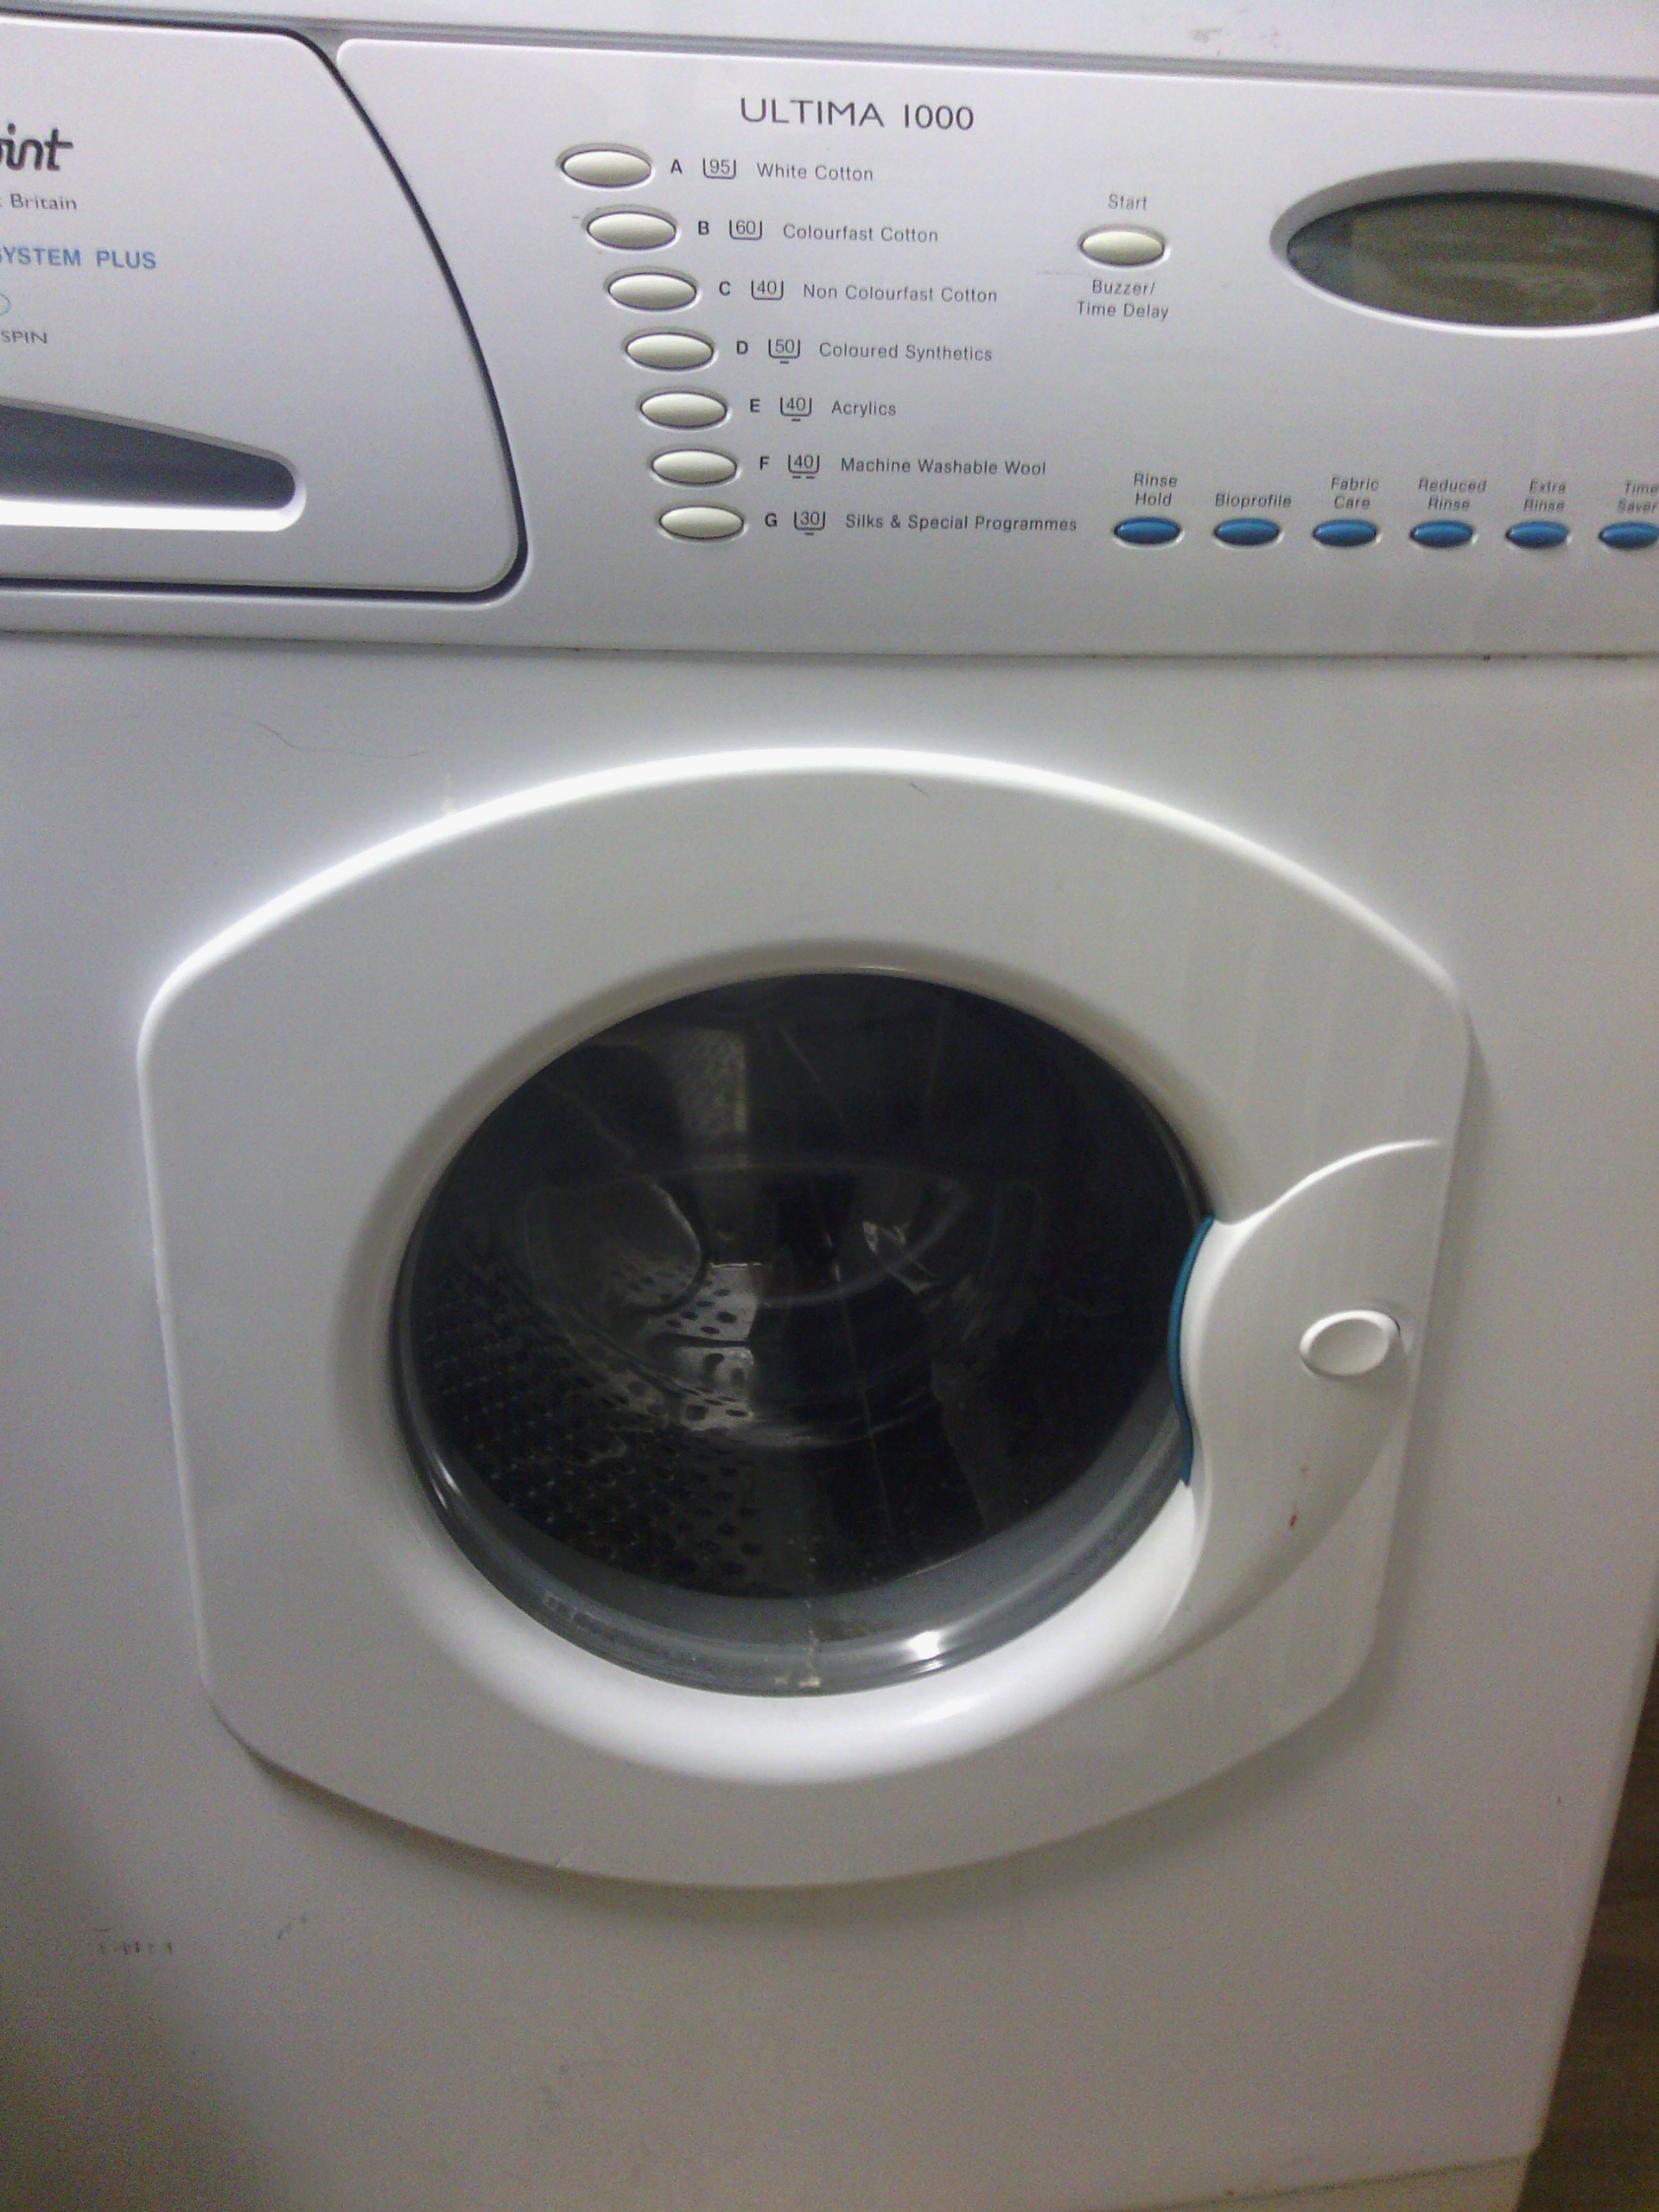 HOTPOINT washing machine ULTIMA 1000 Inteligent care